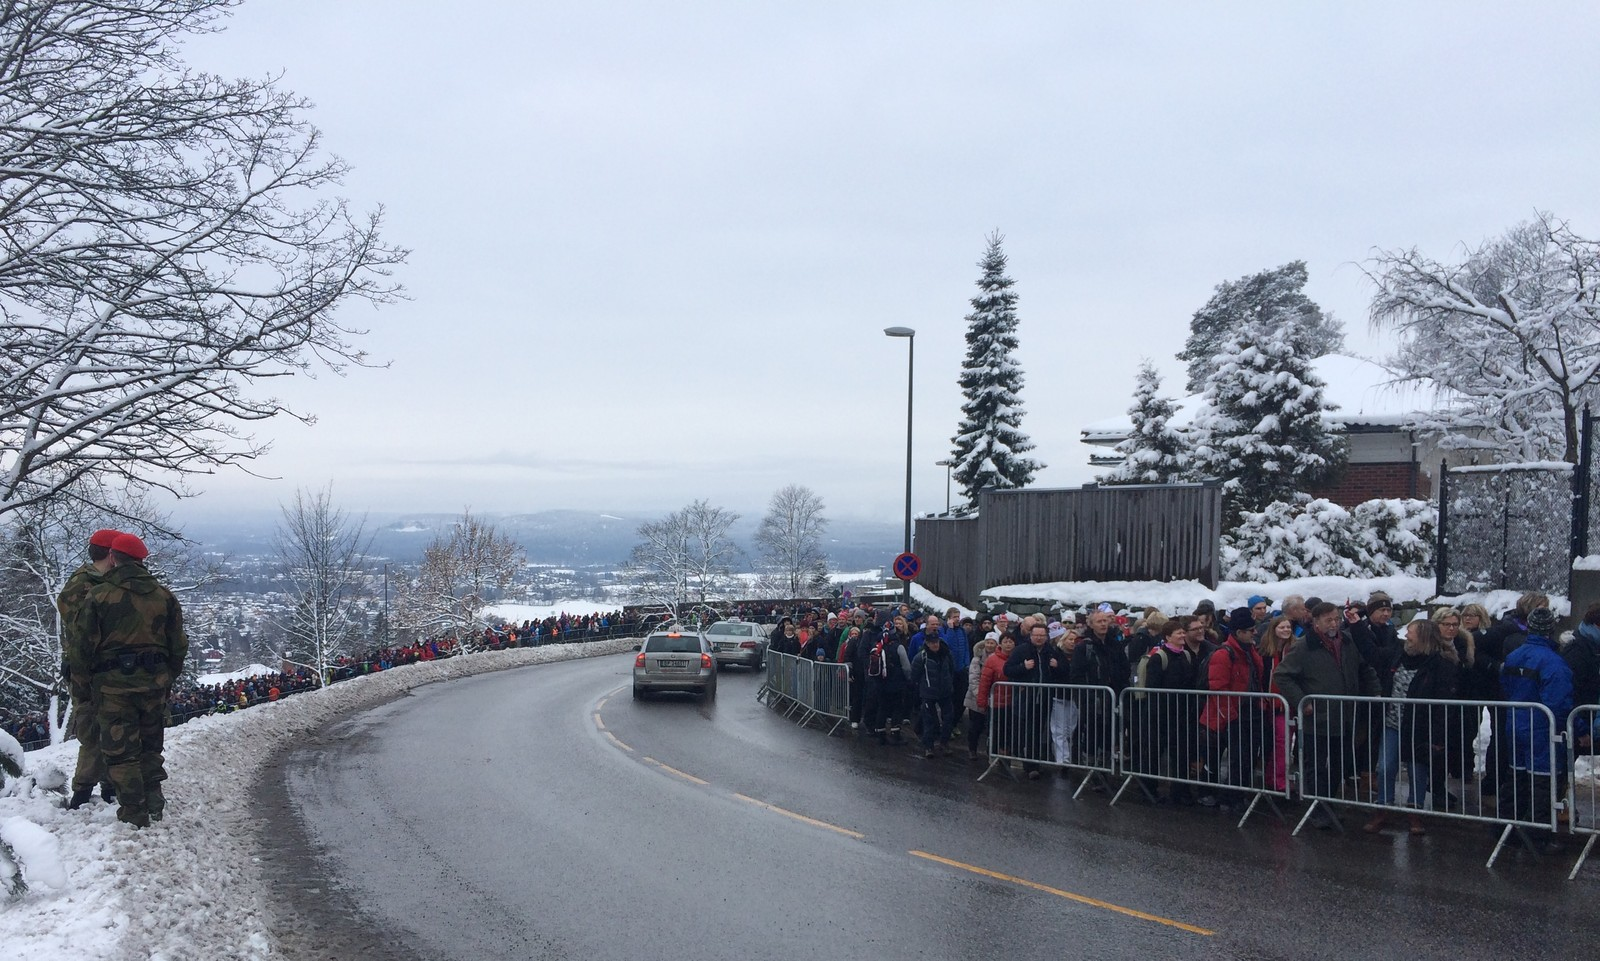 IBU Biathlon World Championships Oslo 2016: Sprint events Saturday 5 March:  The crowds queued up from the Holmenkollen tramcar station to get to Holmenkollen.